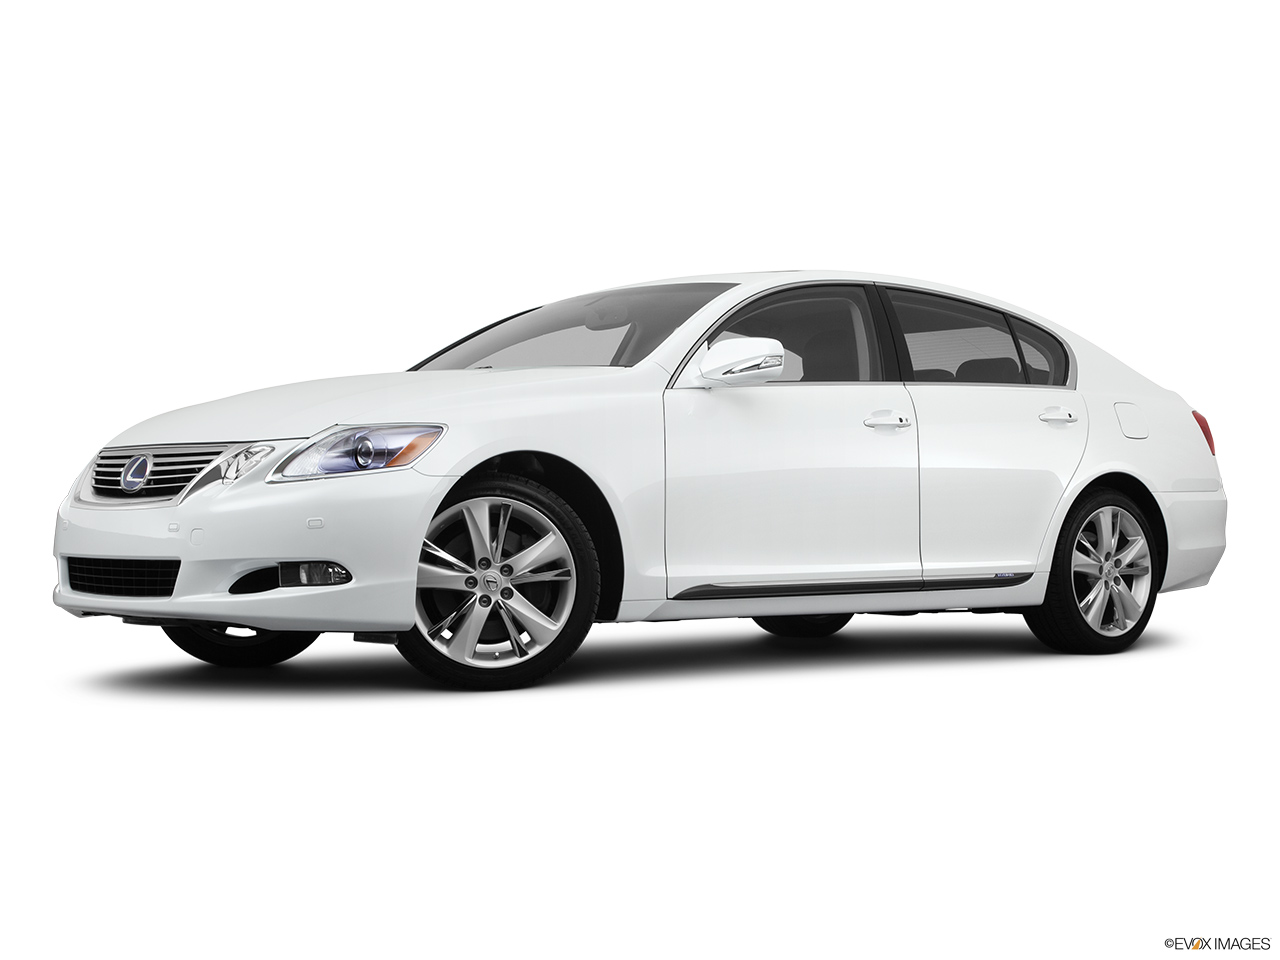 2011 Lexus GS Hybrid GS450h Low/wide front 5/8.